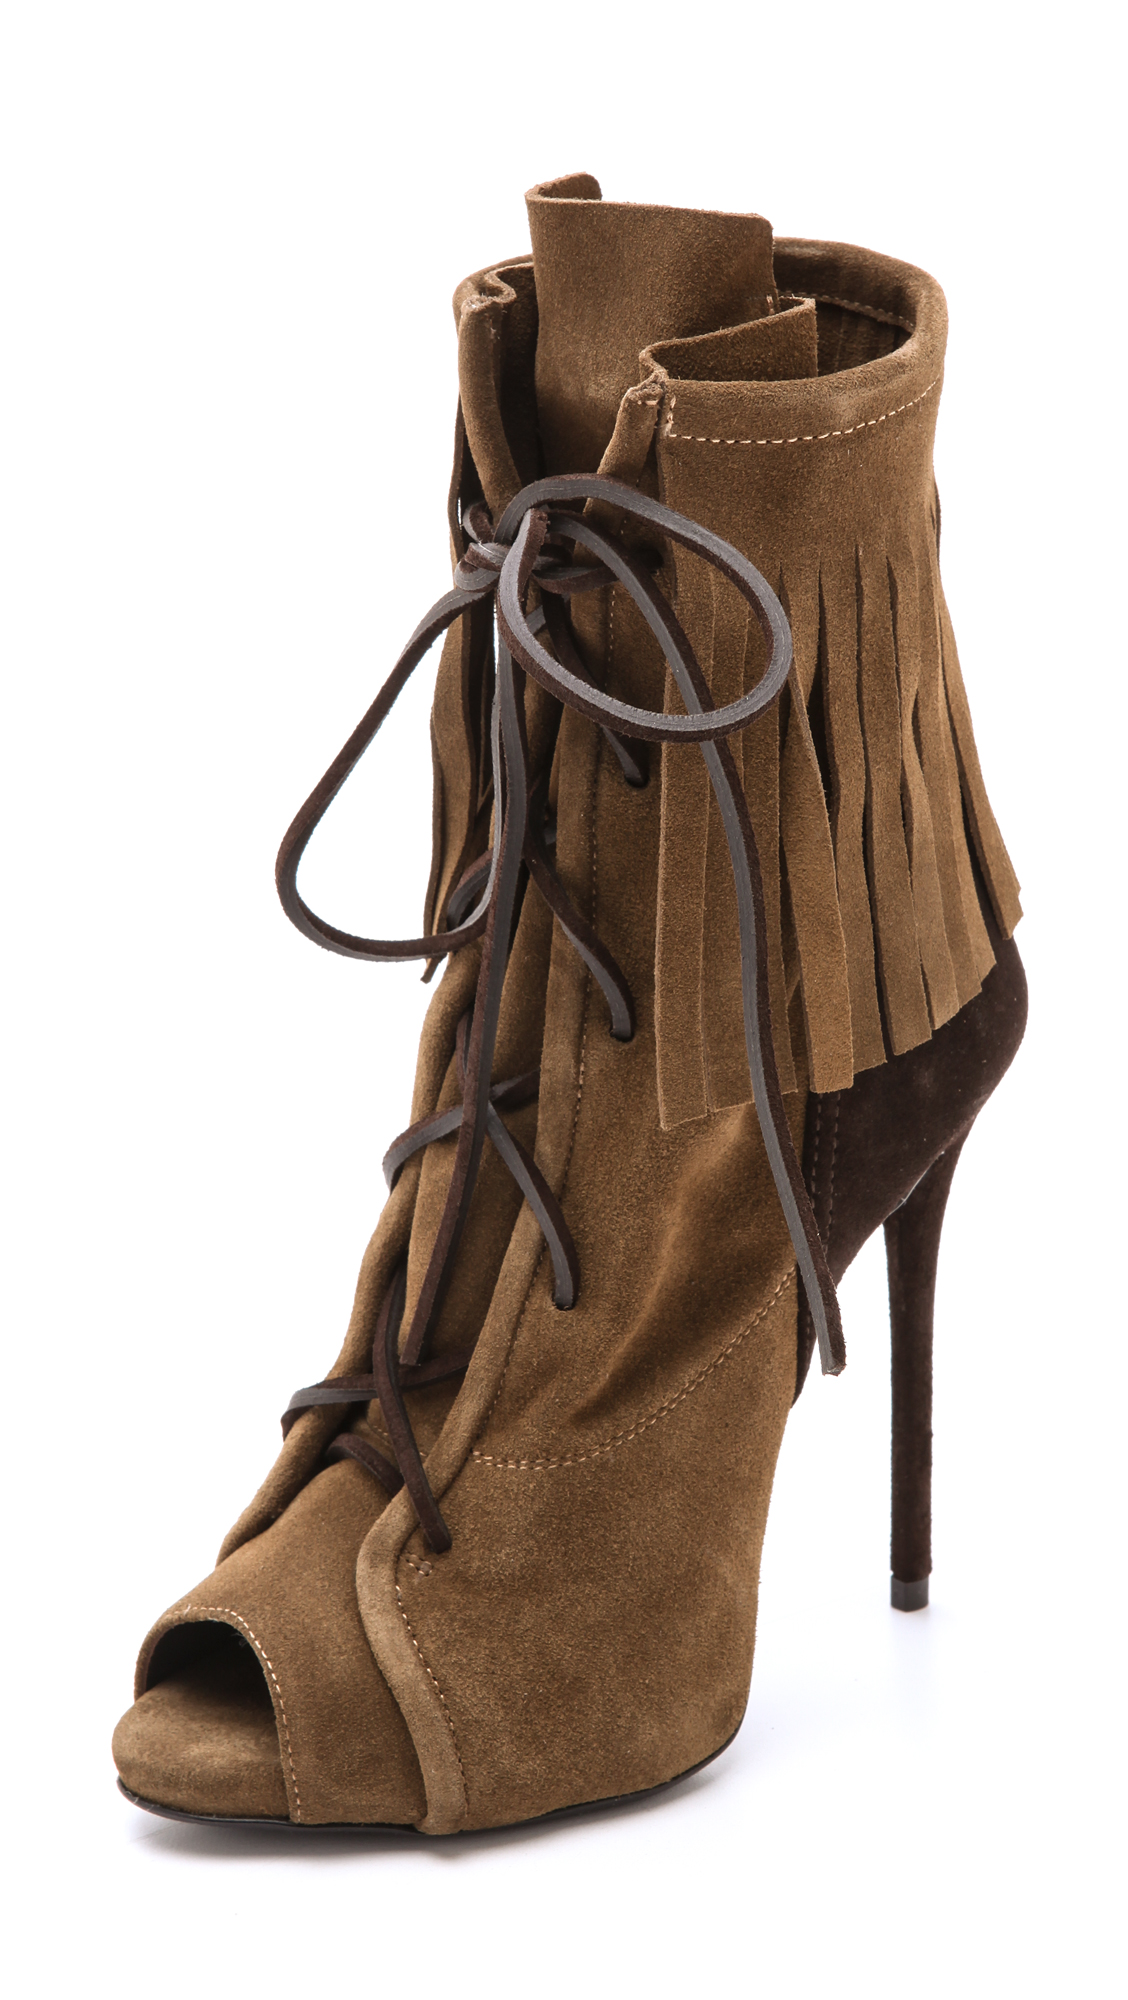 GIUSEPPE ZANOTTI Fringed Suede Ankle Boots in Brown